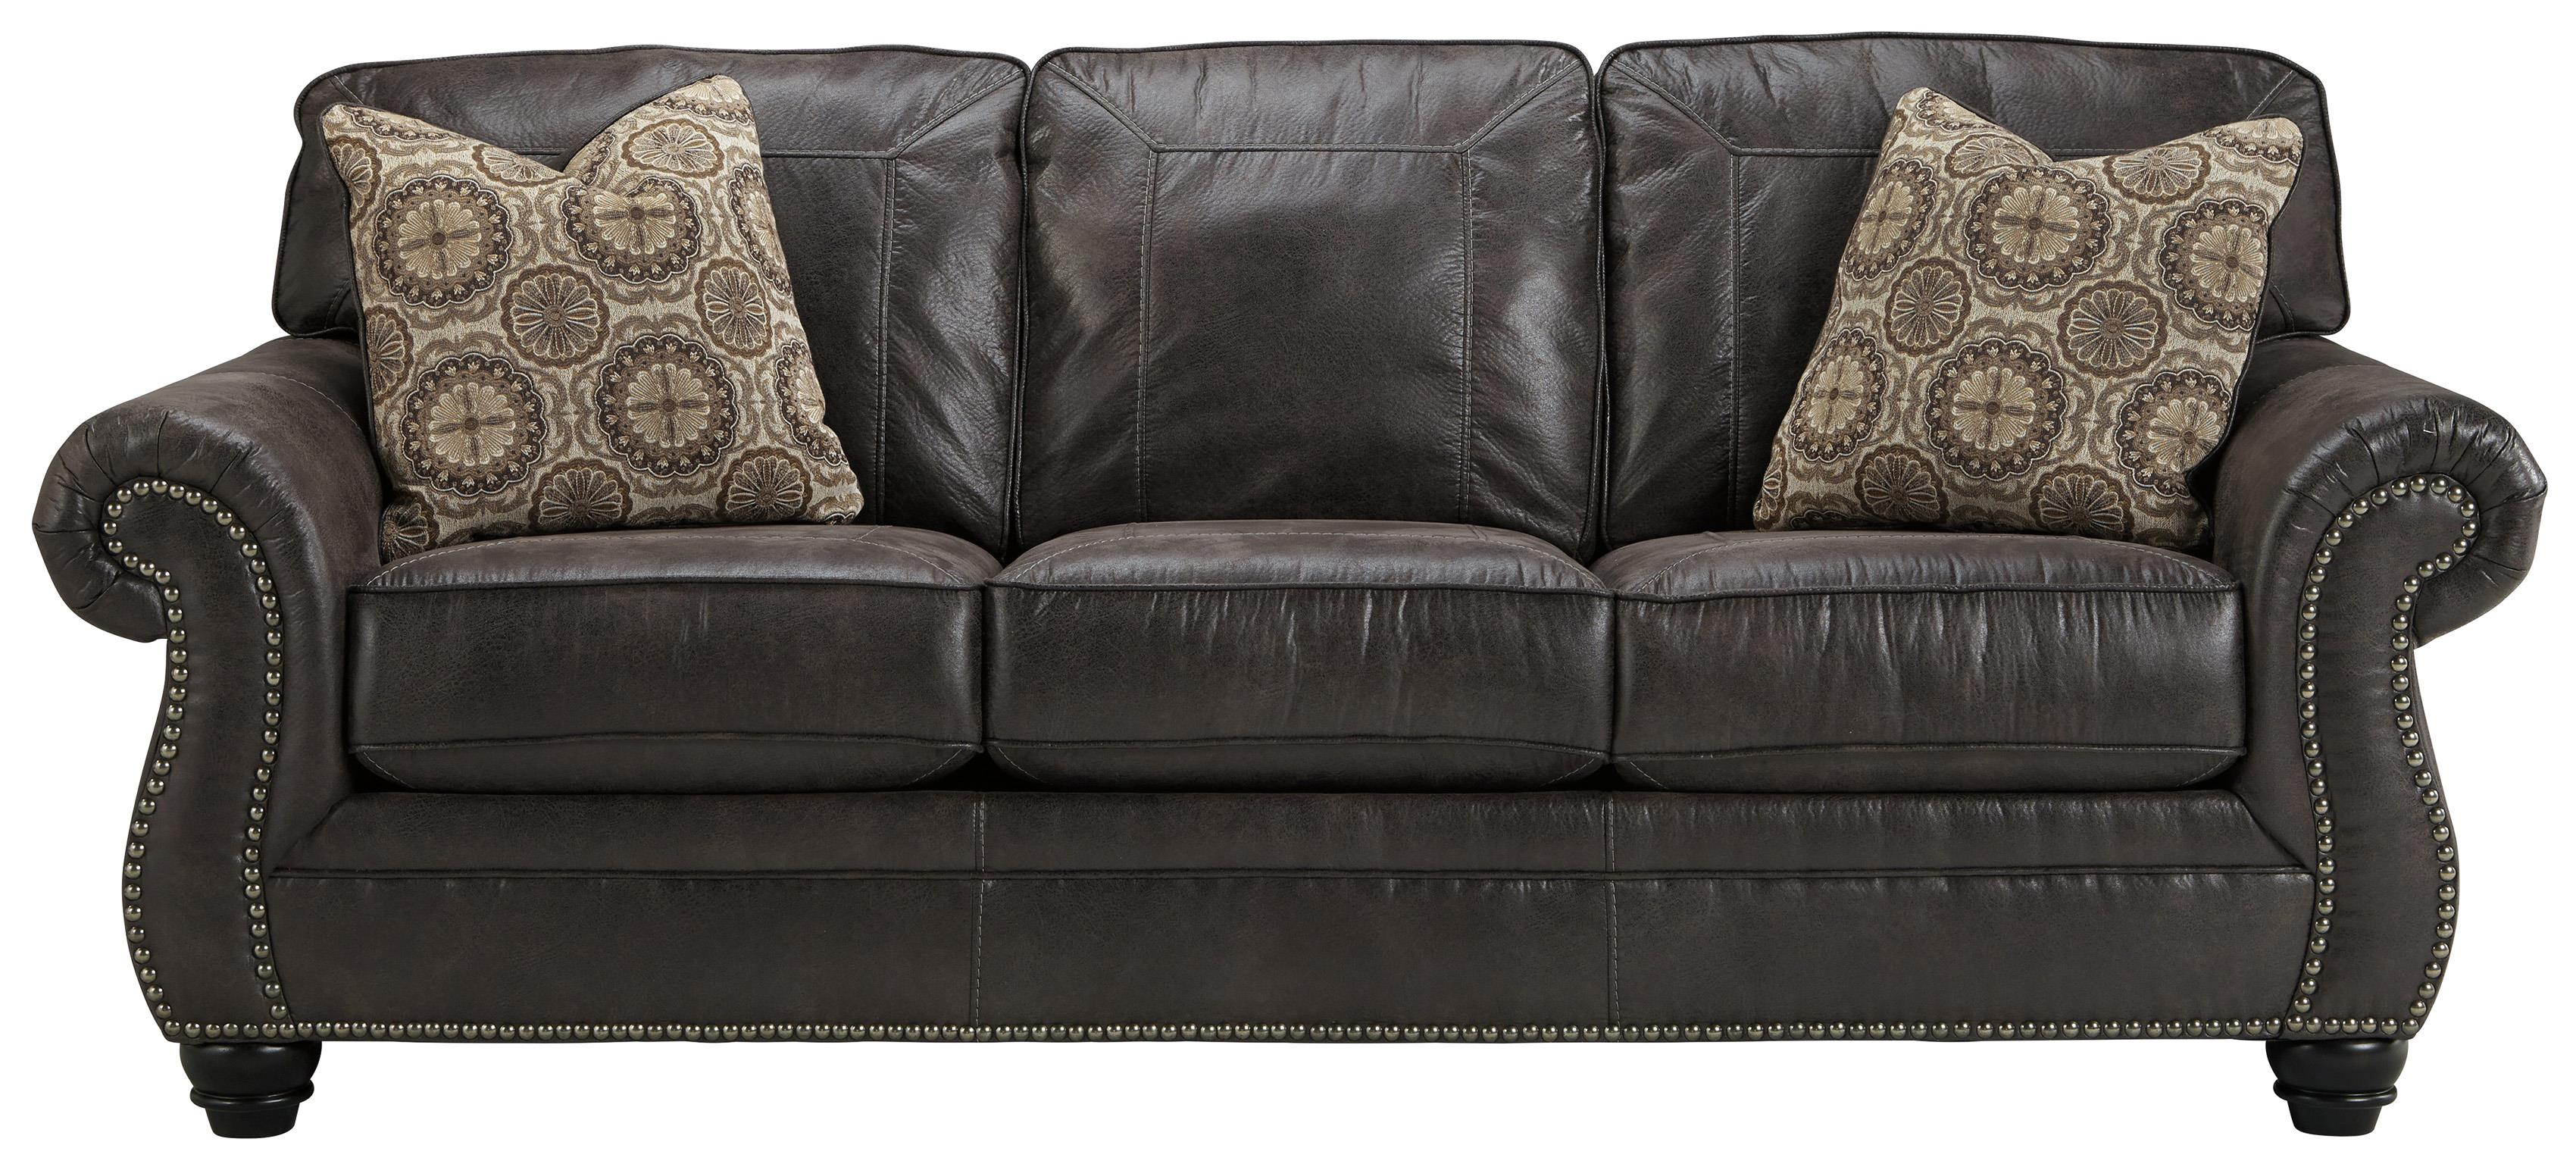 Benchcraft Breville Queen Sofa Sleeper - Item Number: 8000439